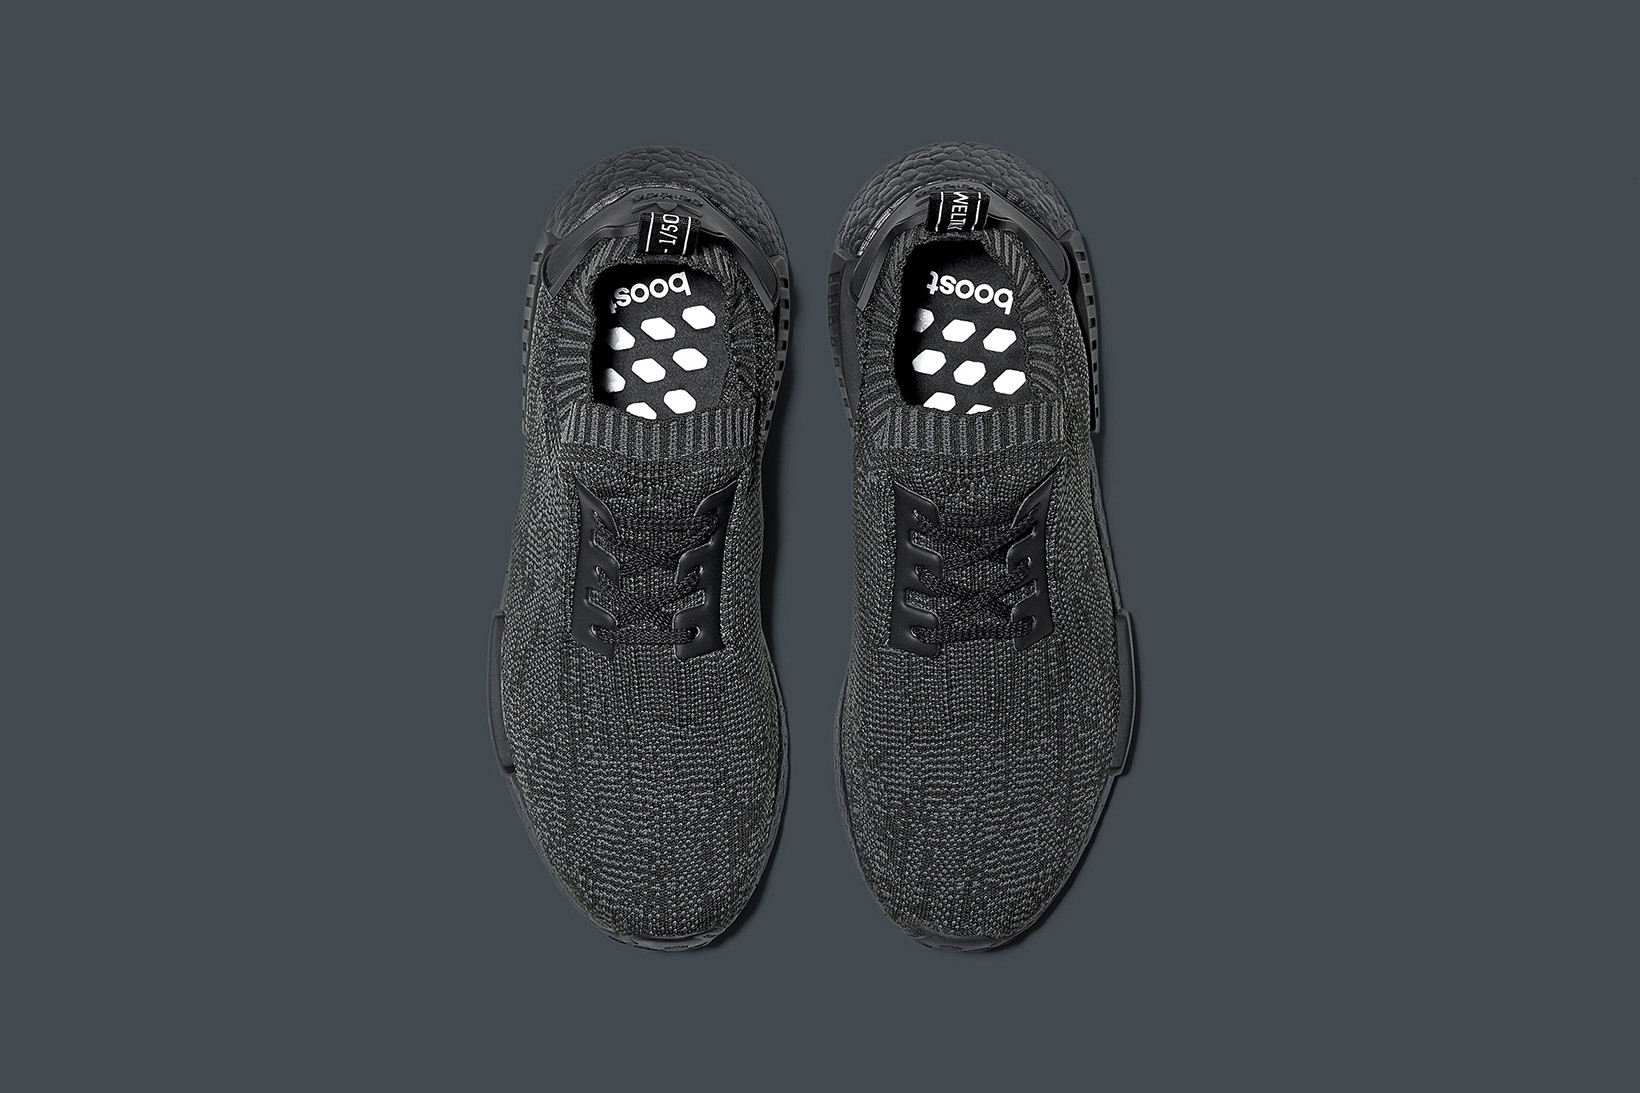 nmd adidas pitch black